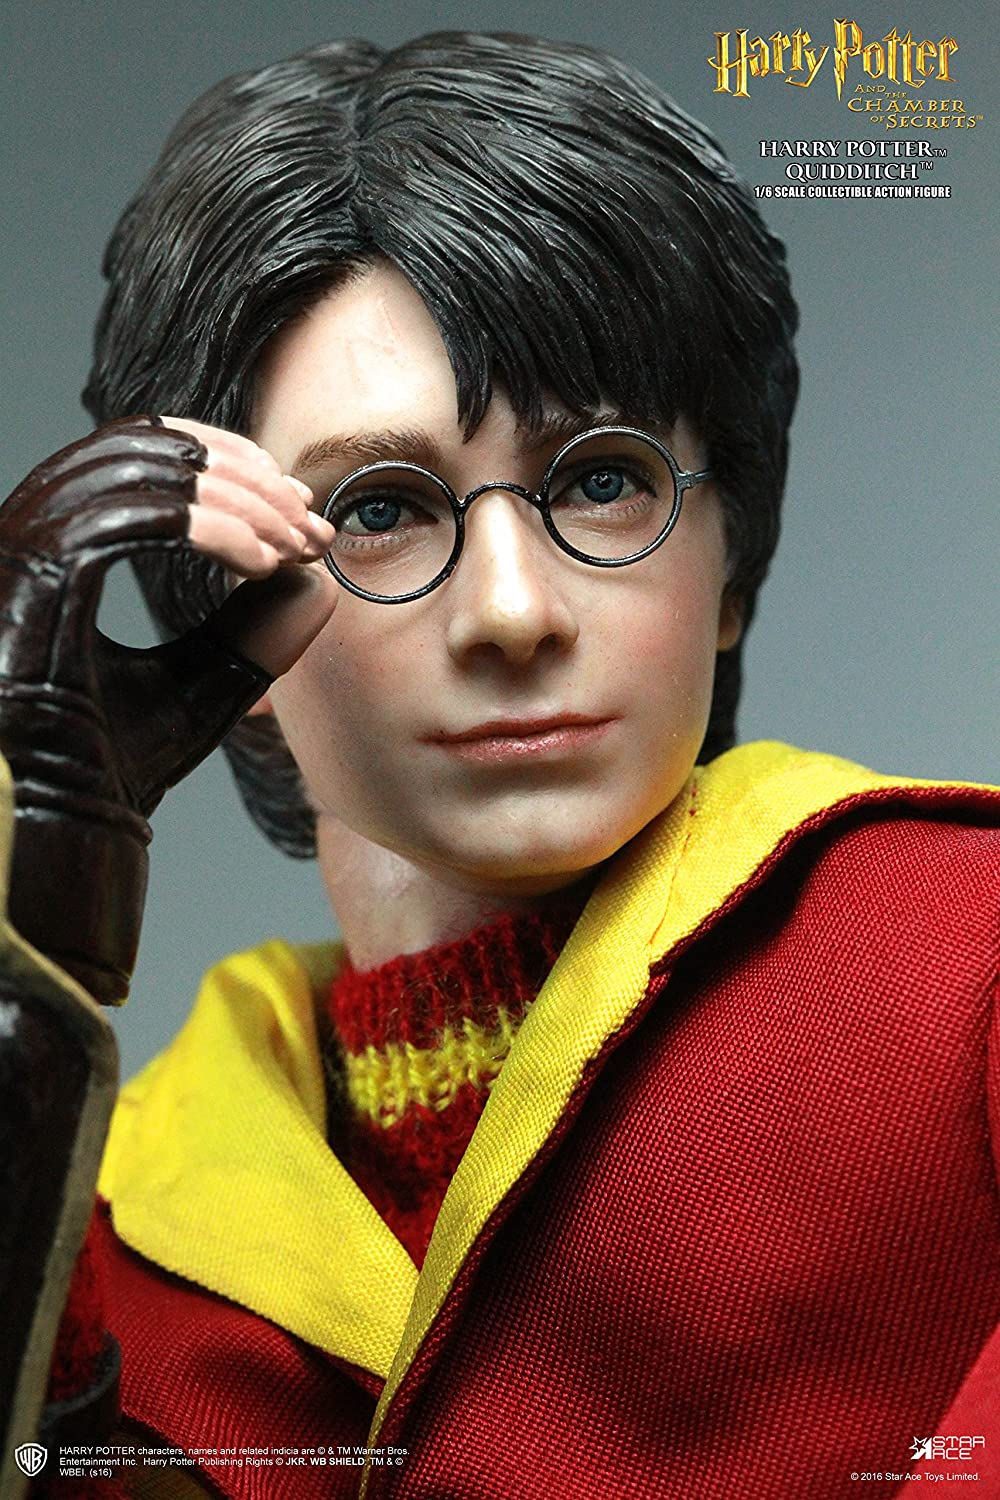 com star ace toys harry potter the chamber of secrets com star ace toys harry potter the chamber of secrets harry potter quidditch version action figure 1 6 scale toys games